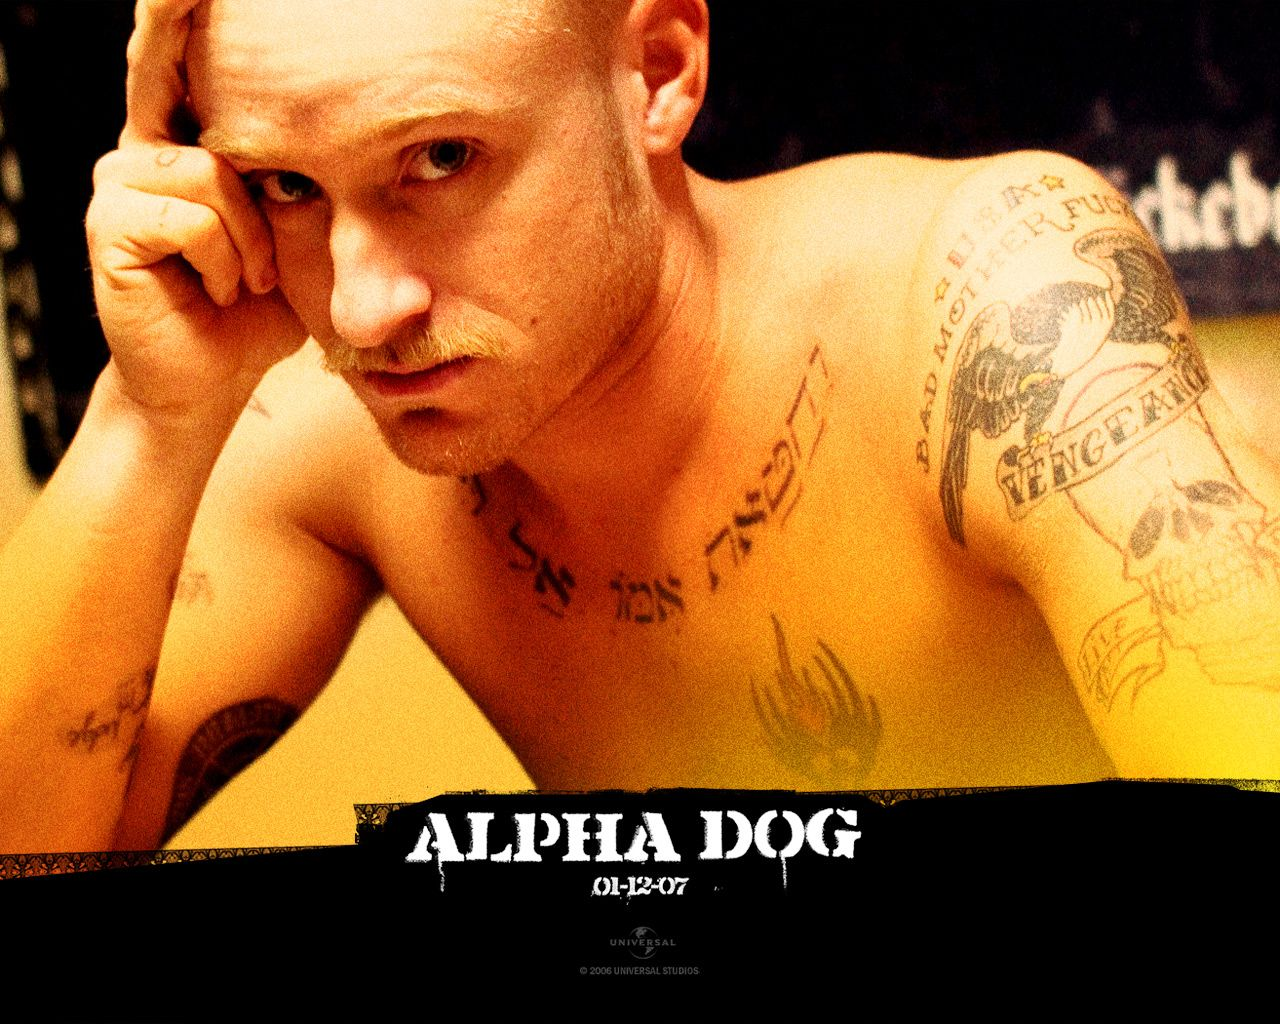 Watch streaming hd alpha dog starring emile hirsch for Justin timberlake tattoos removed